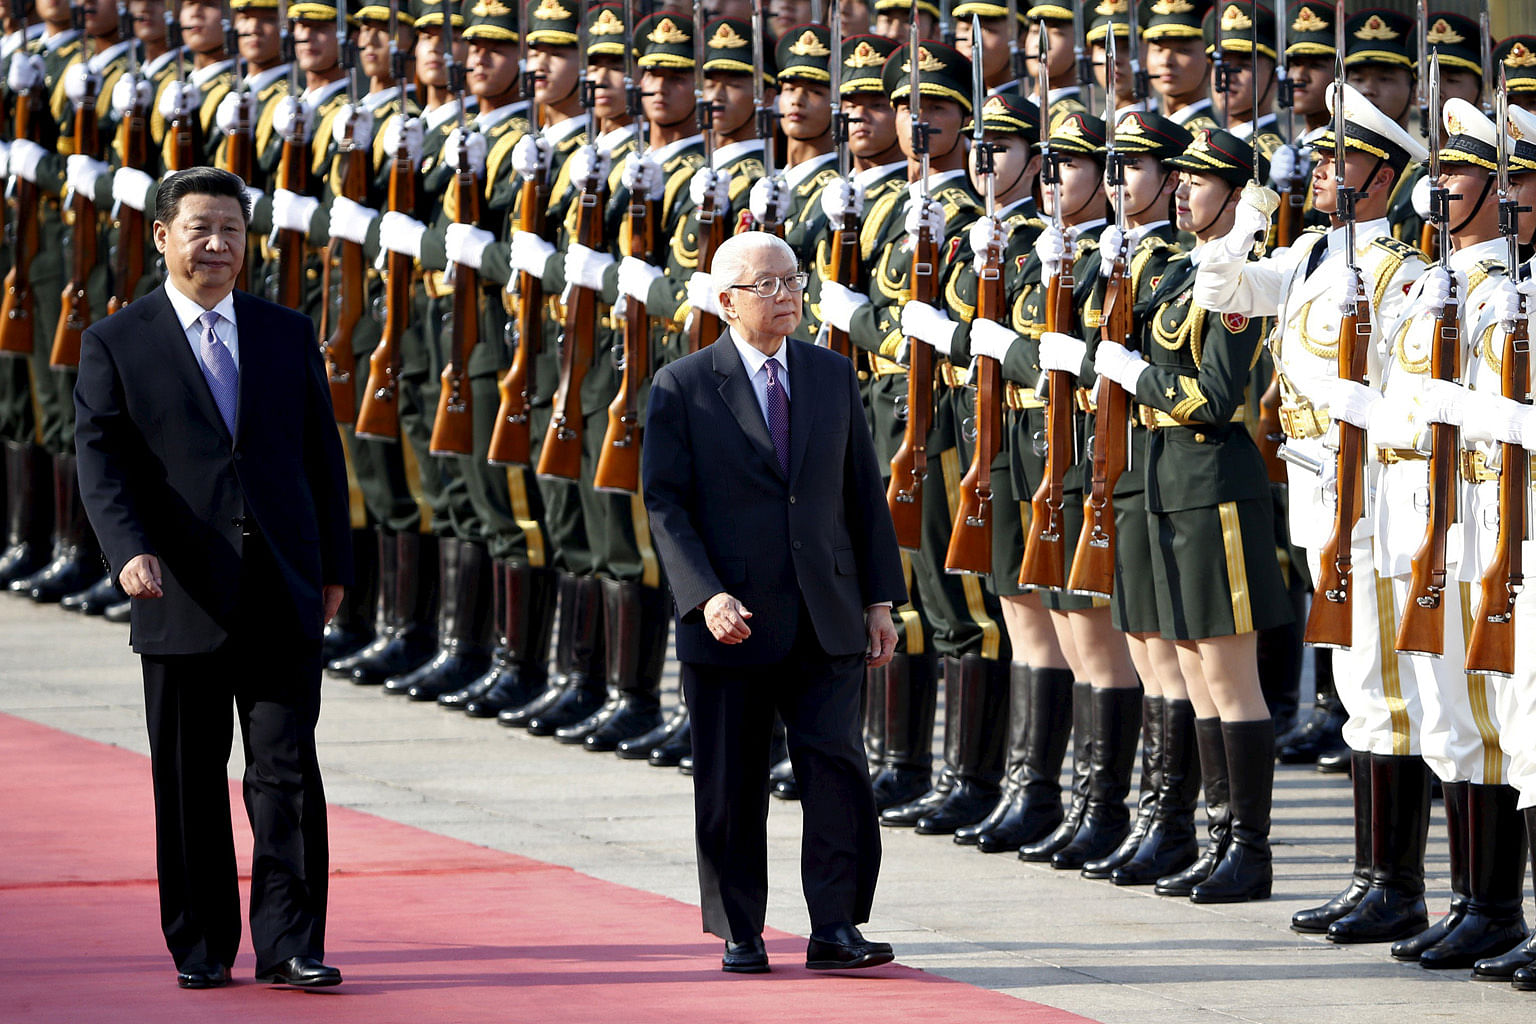 Singapore's President Tony Tan Keng Yam (right) and Chinese President Xi Jinping inspecting honour guards during a welcome ceremony outside the Great Hall of the People in Beijing on July 3.